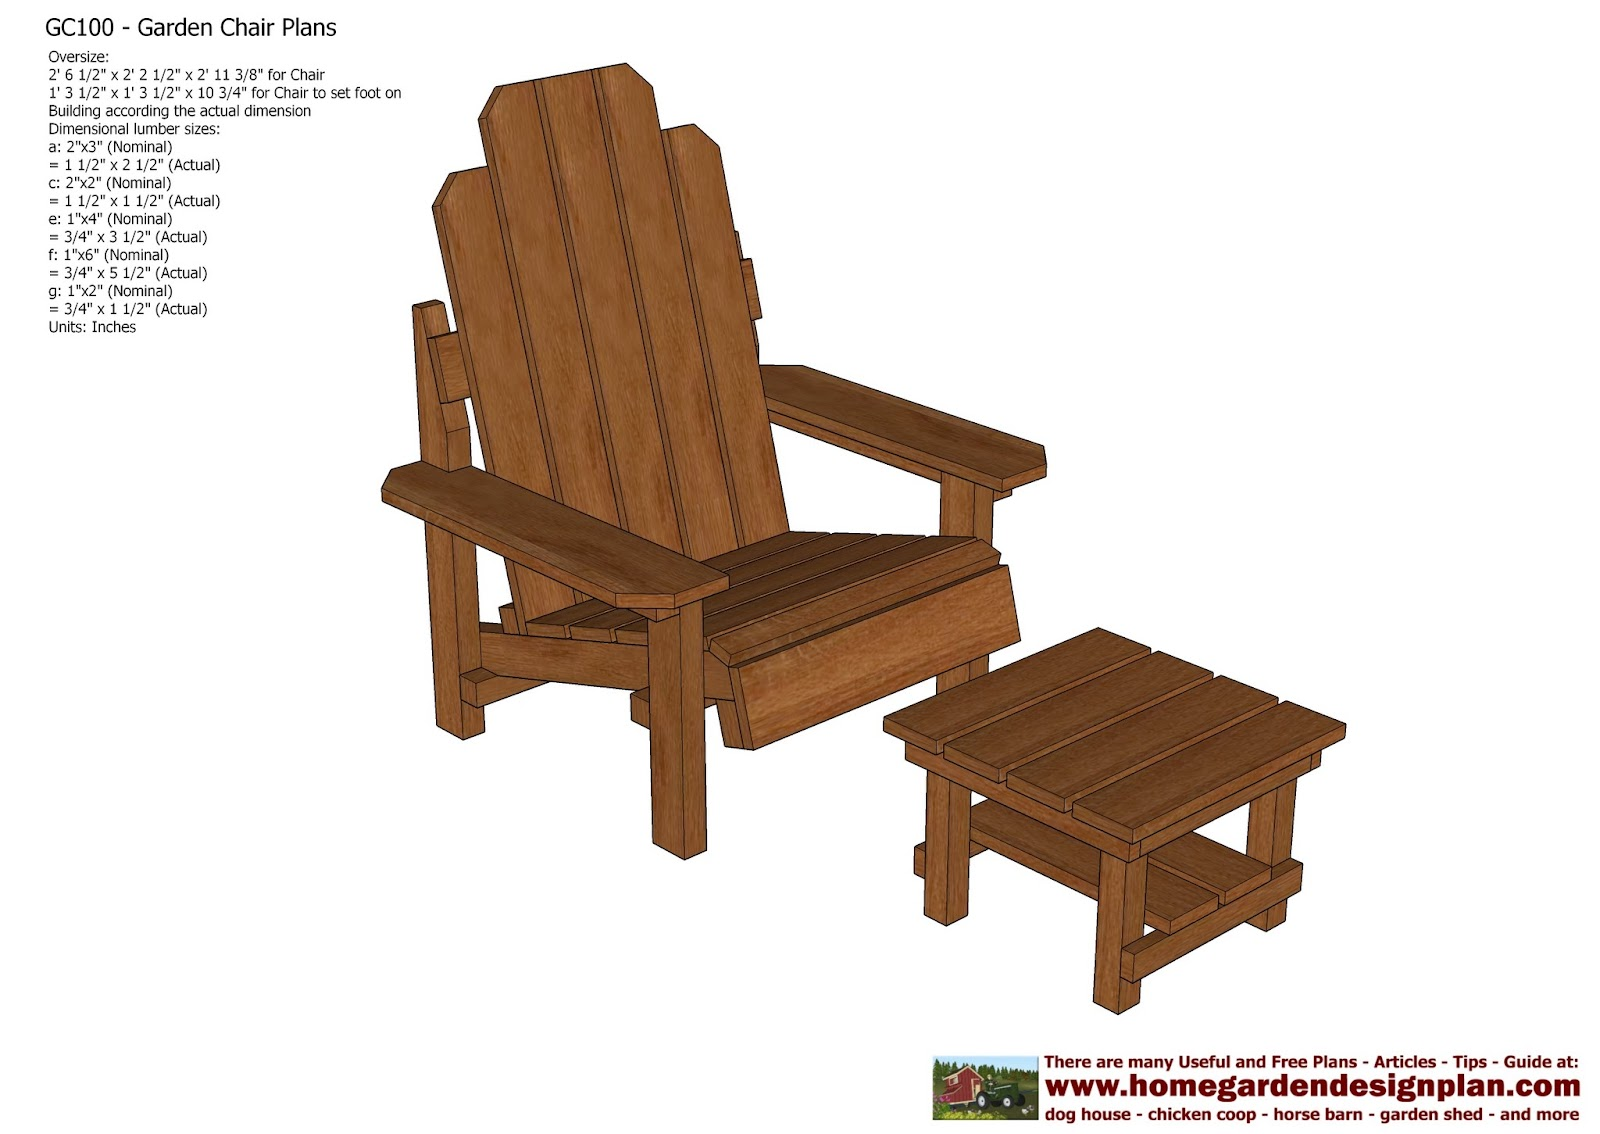 Outdoor wood furniture plans furniture design ideas for Patio furniture designs plans